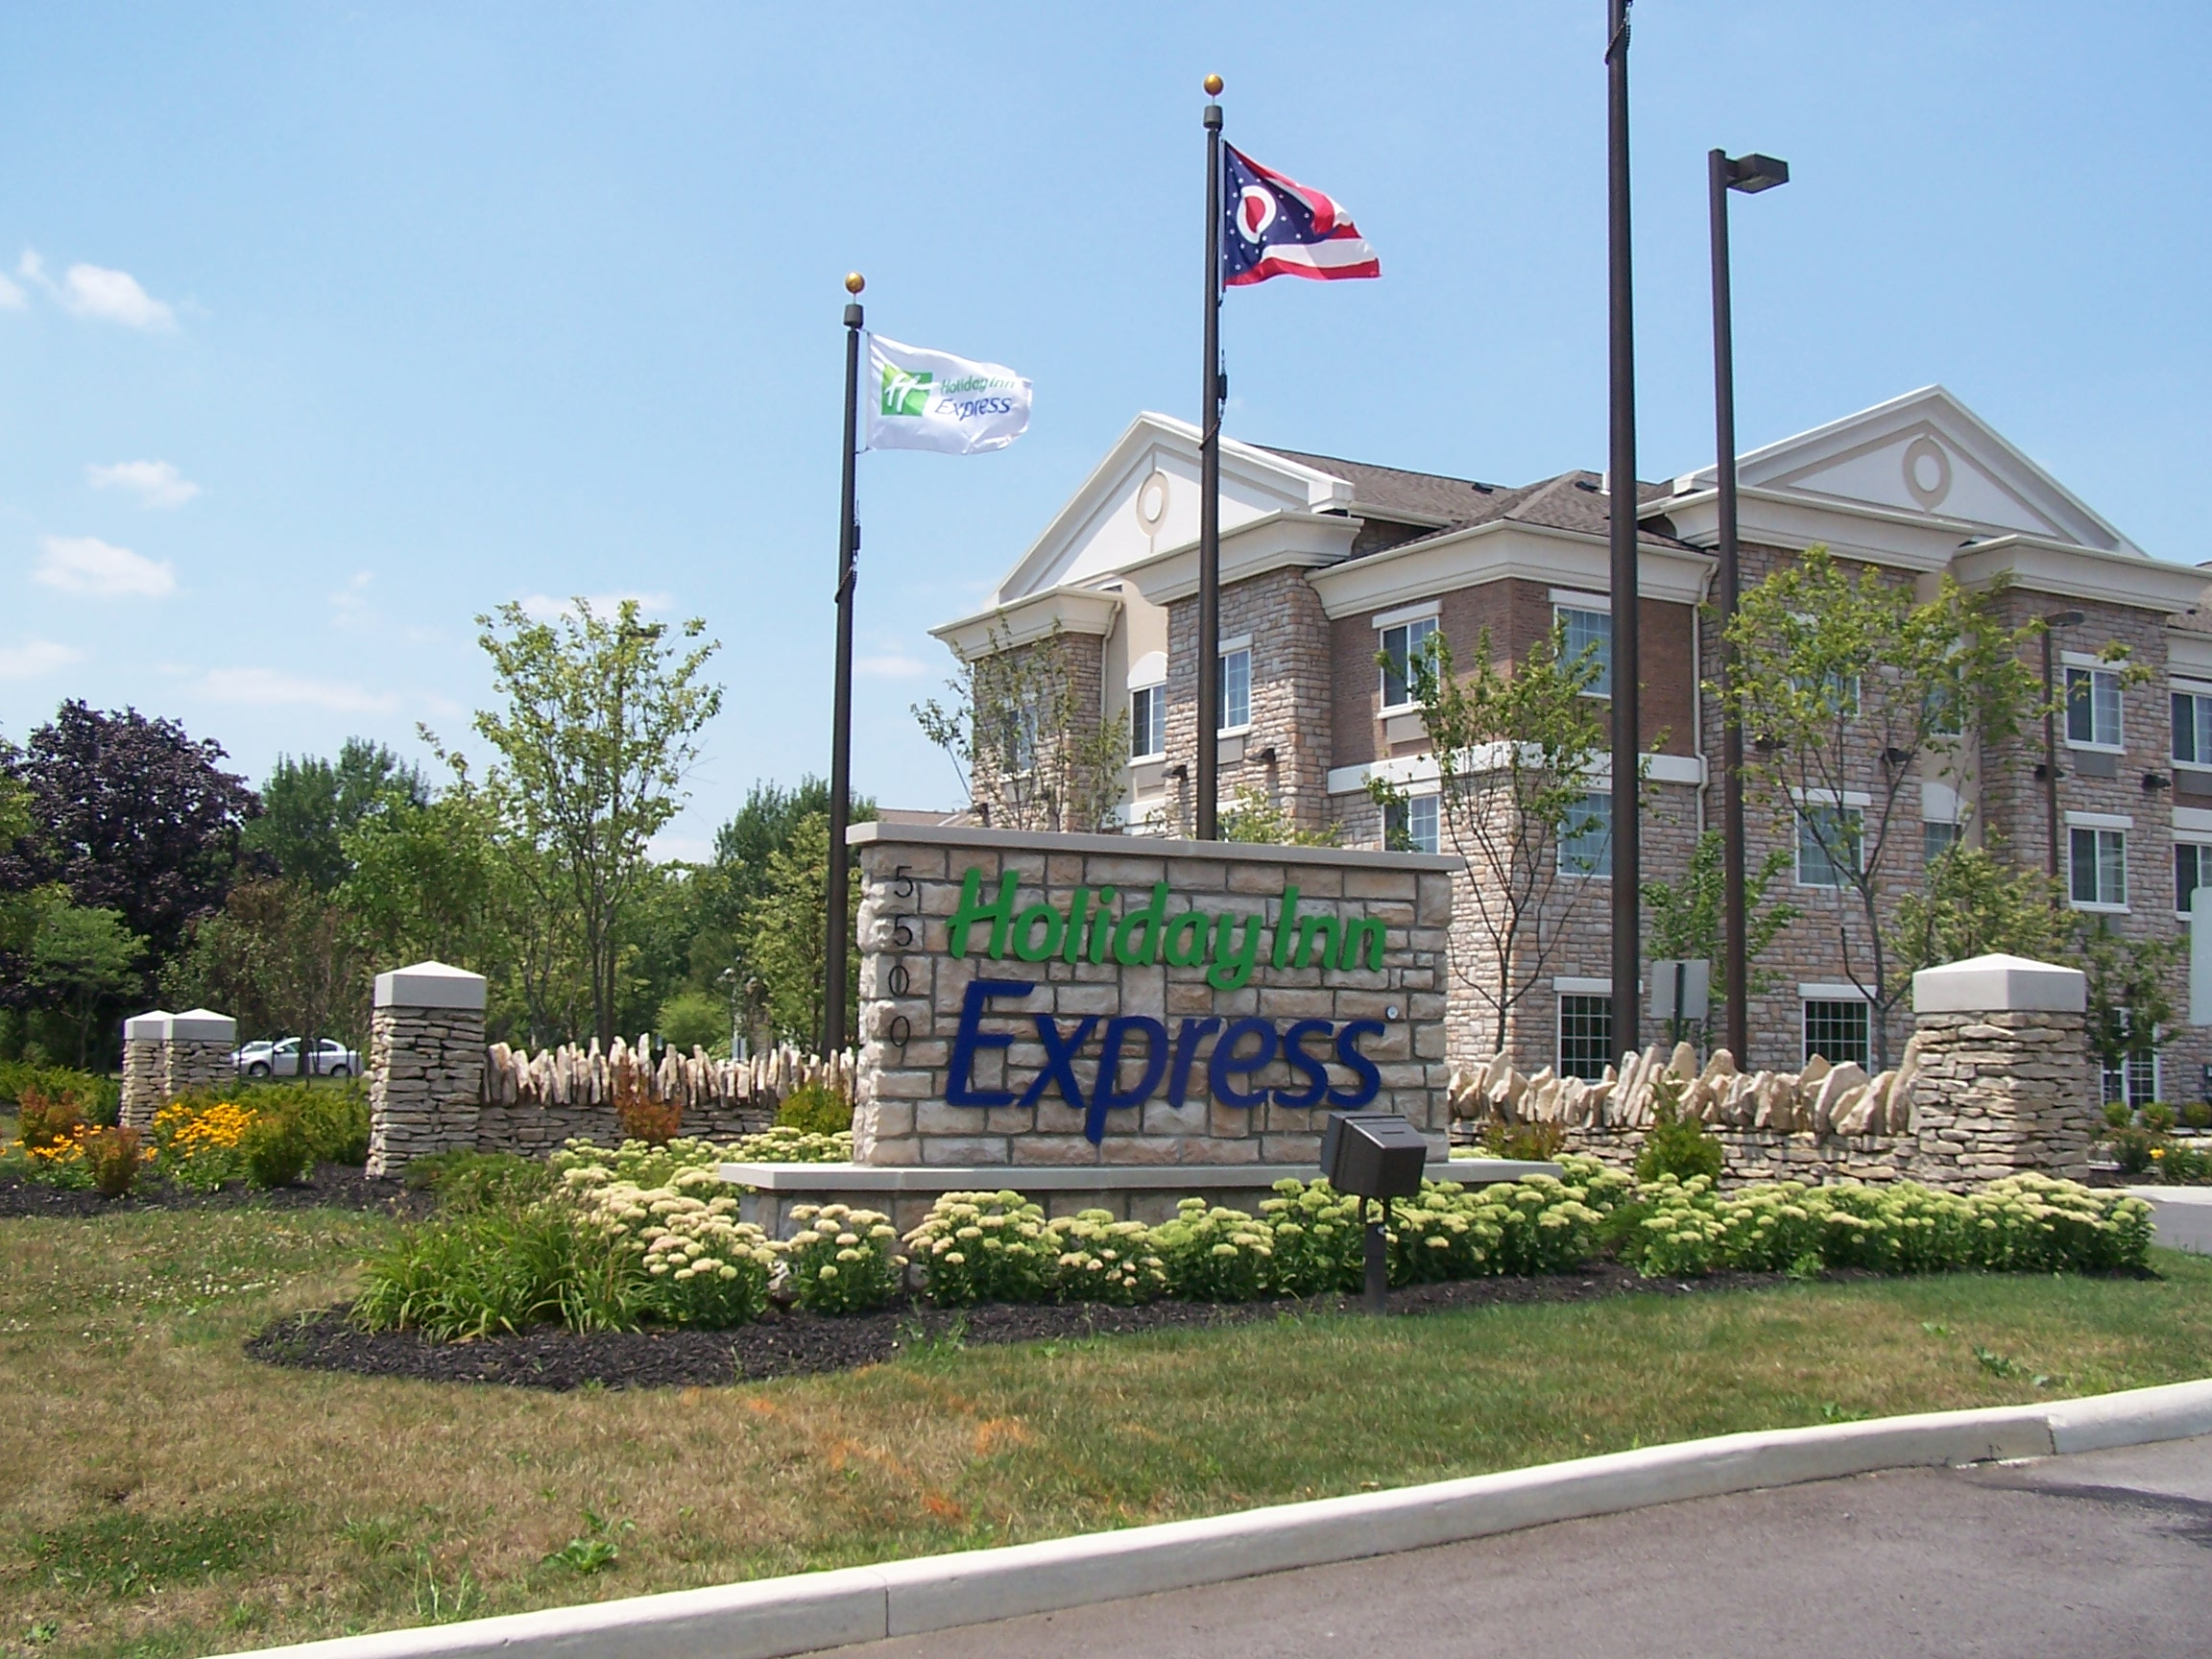 Outside view with sign of the Holiday Inn Express in Dublin, OH